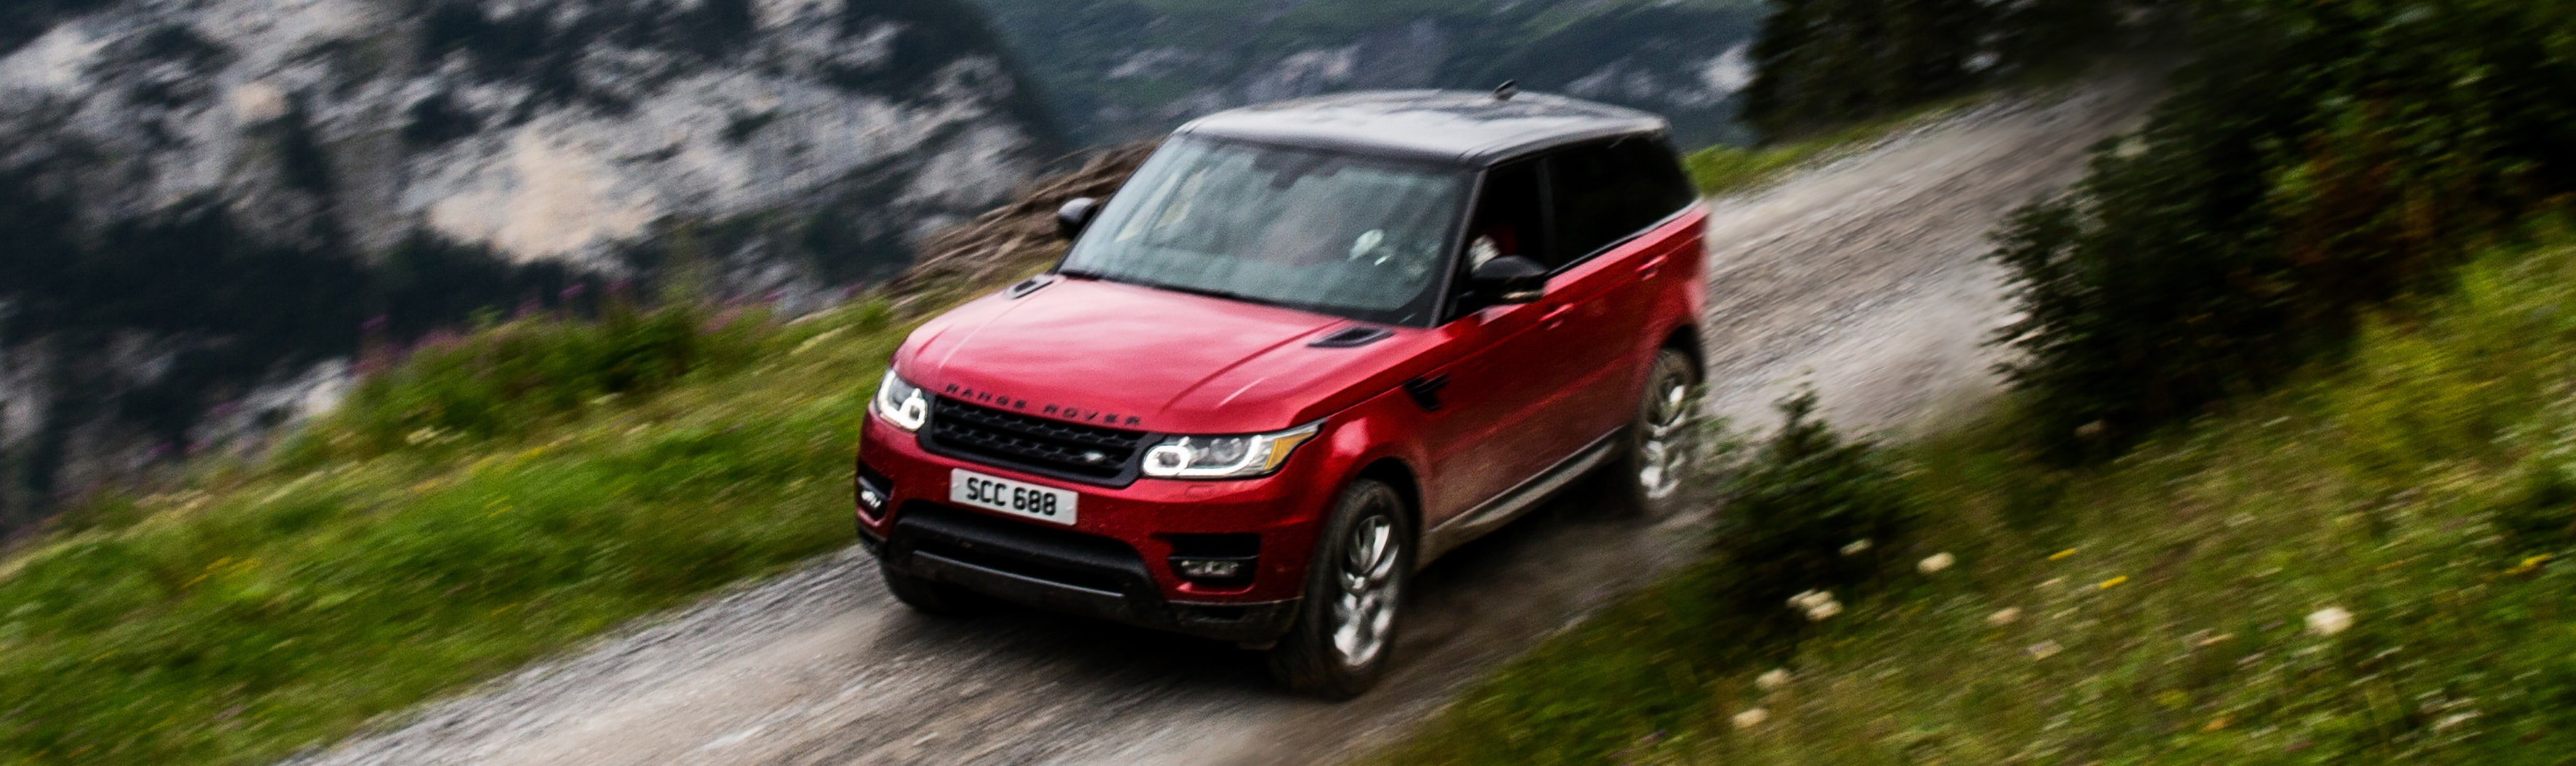 Range Rover Sport Safety